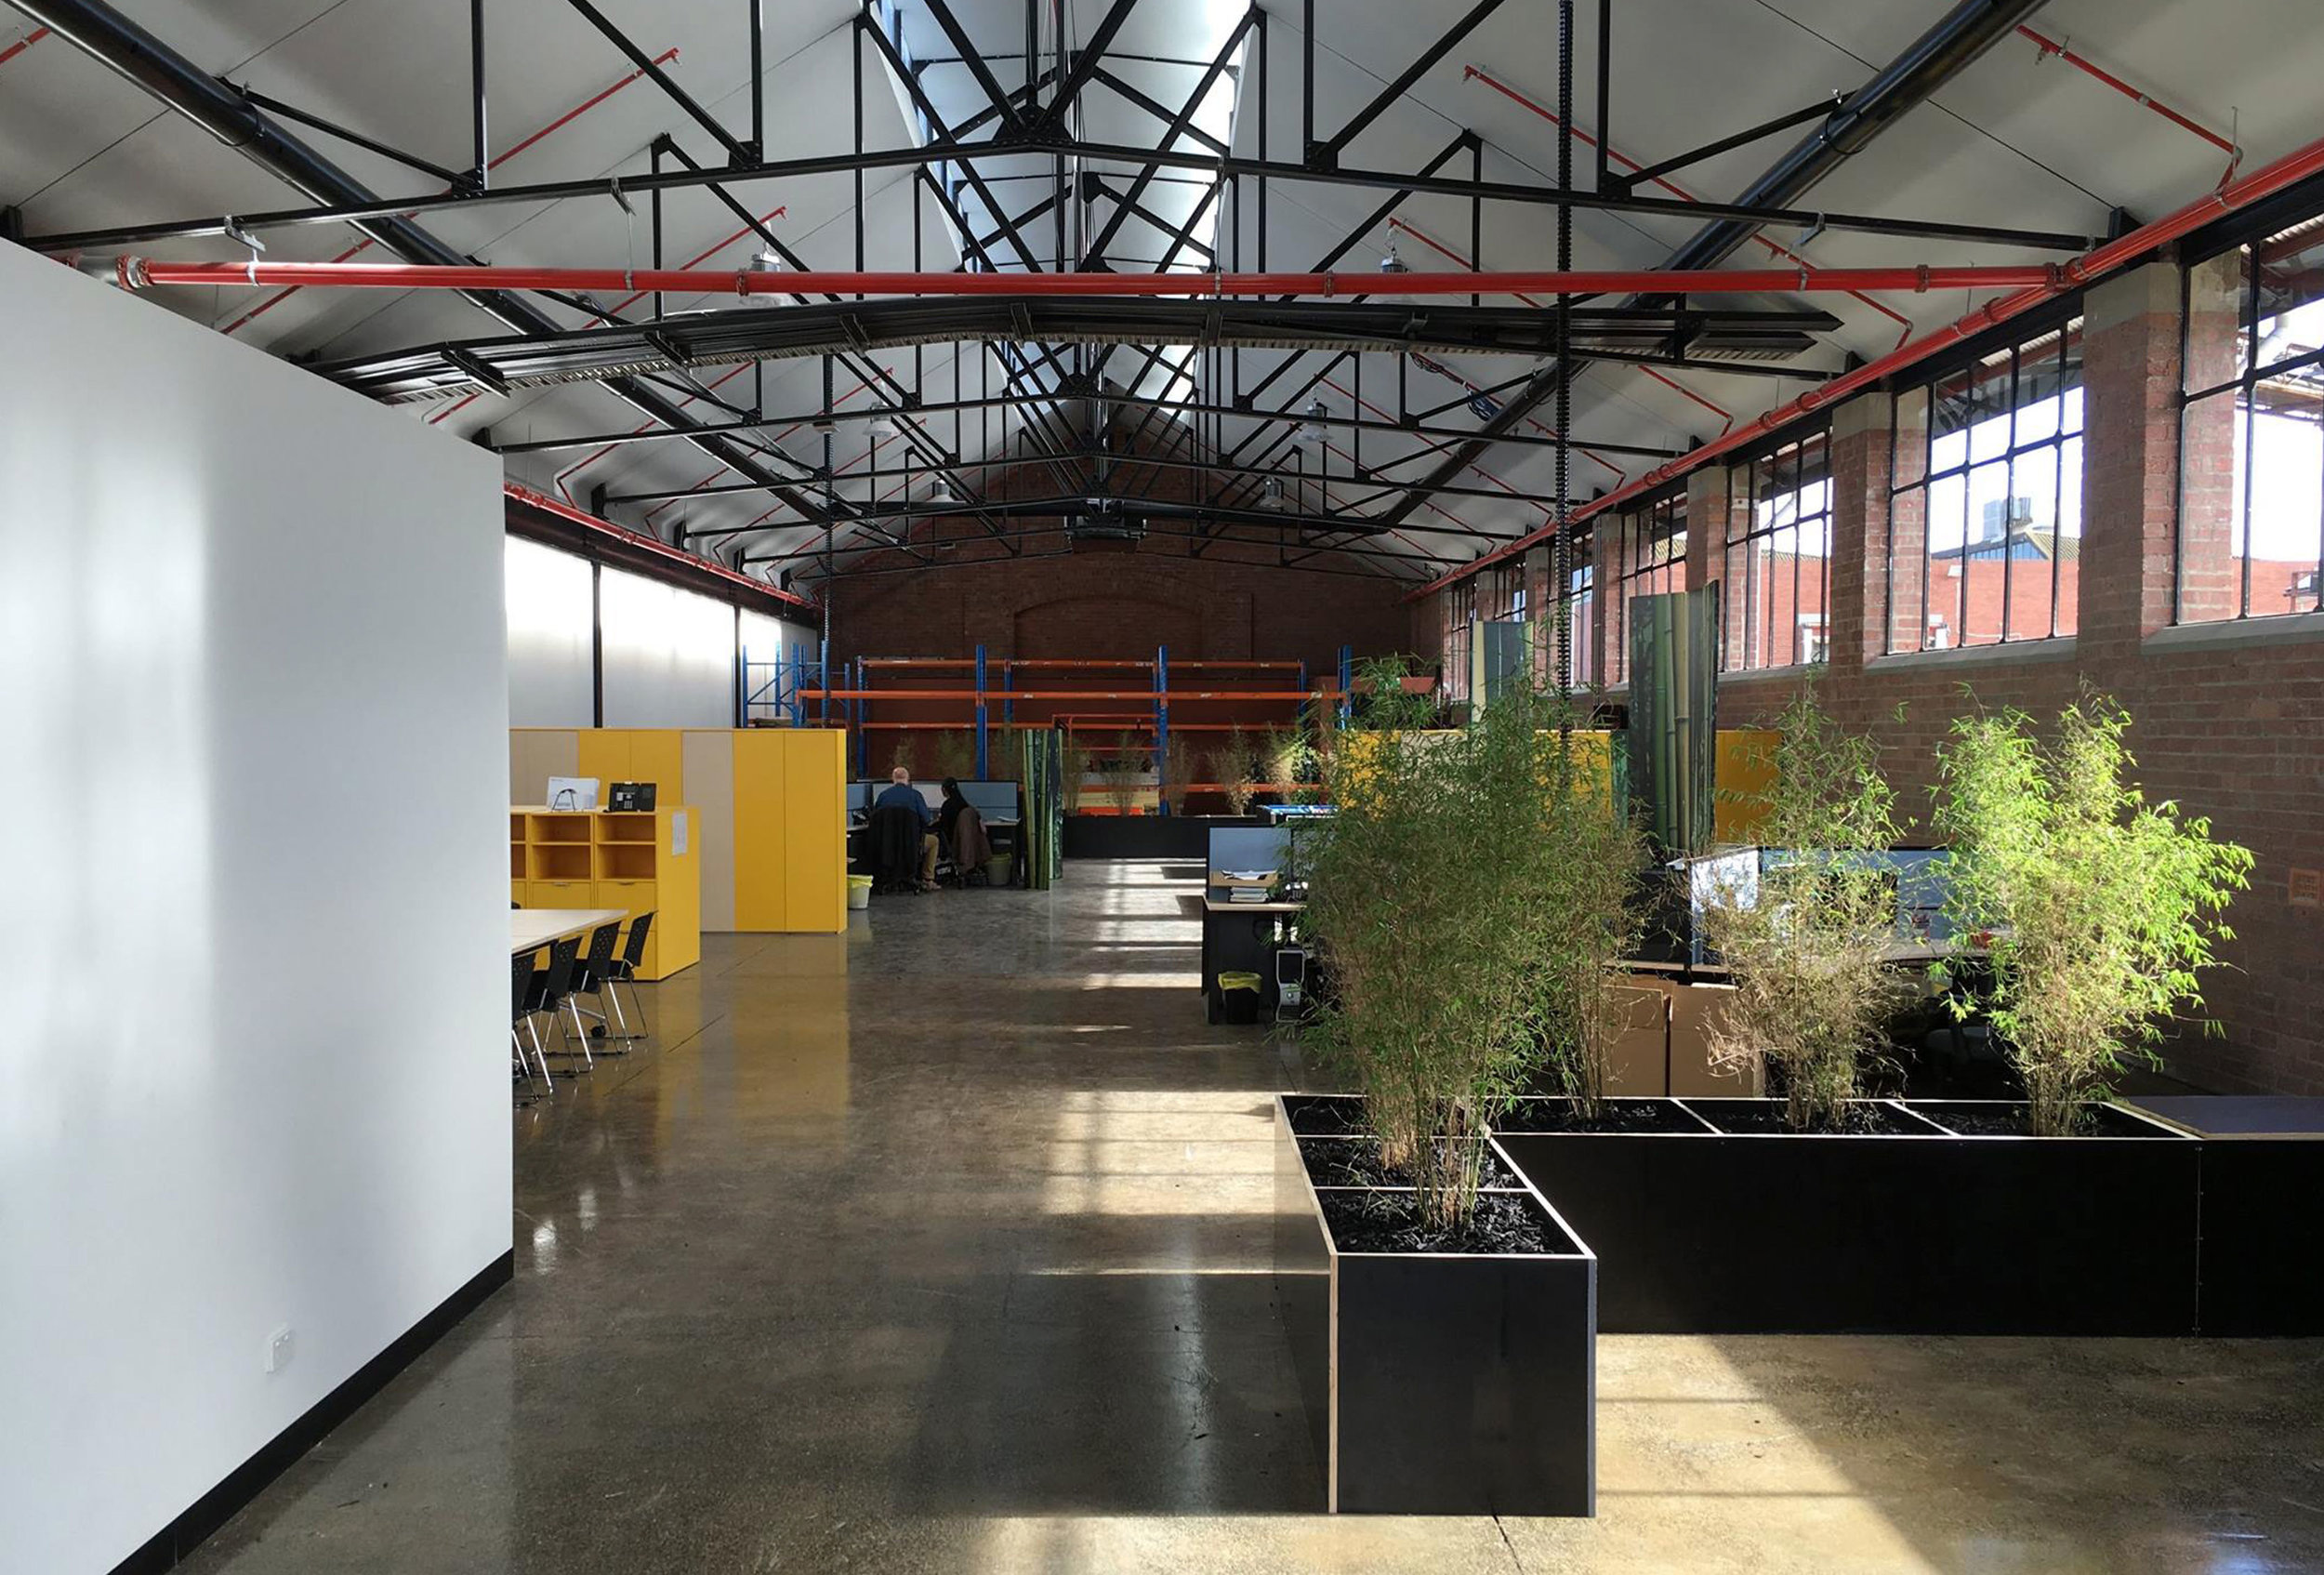 FIND A SPACE - Join the Exciting Growth at Regional Victoria's Premier Innovation Precinct